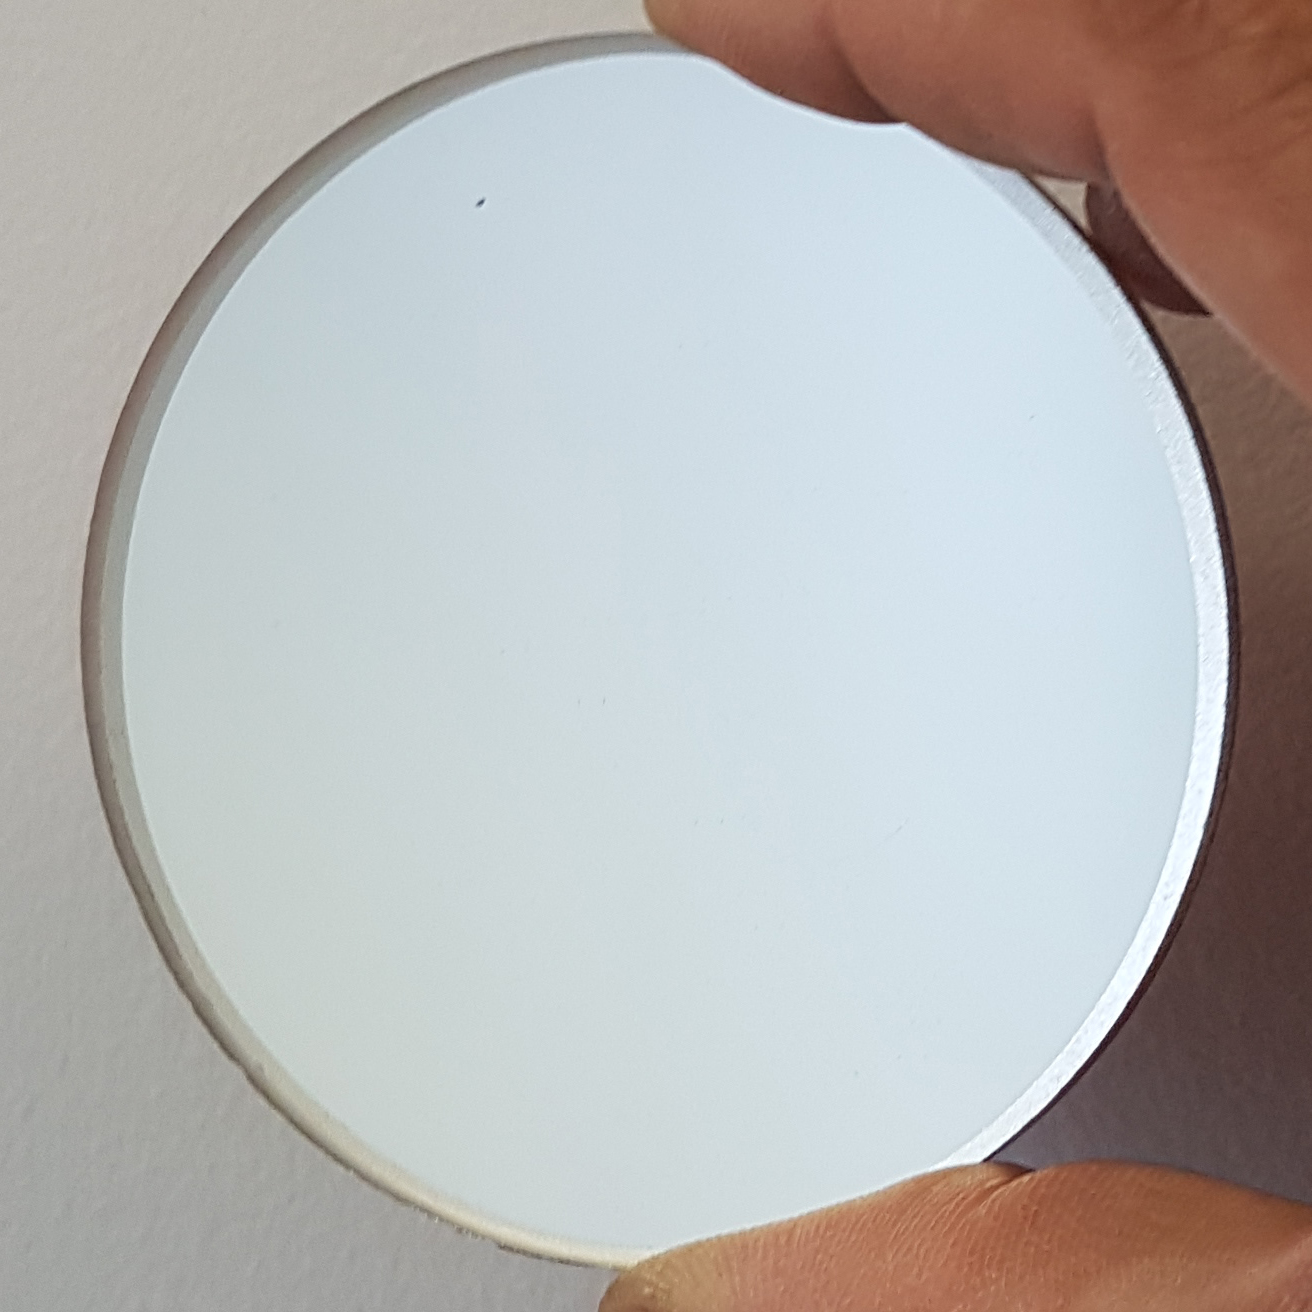 20cm Focal Length 38mm Diameter Double-Concave Glass Lens Pack of 20